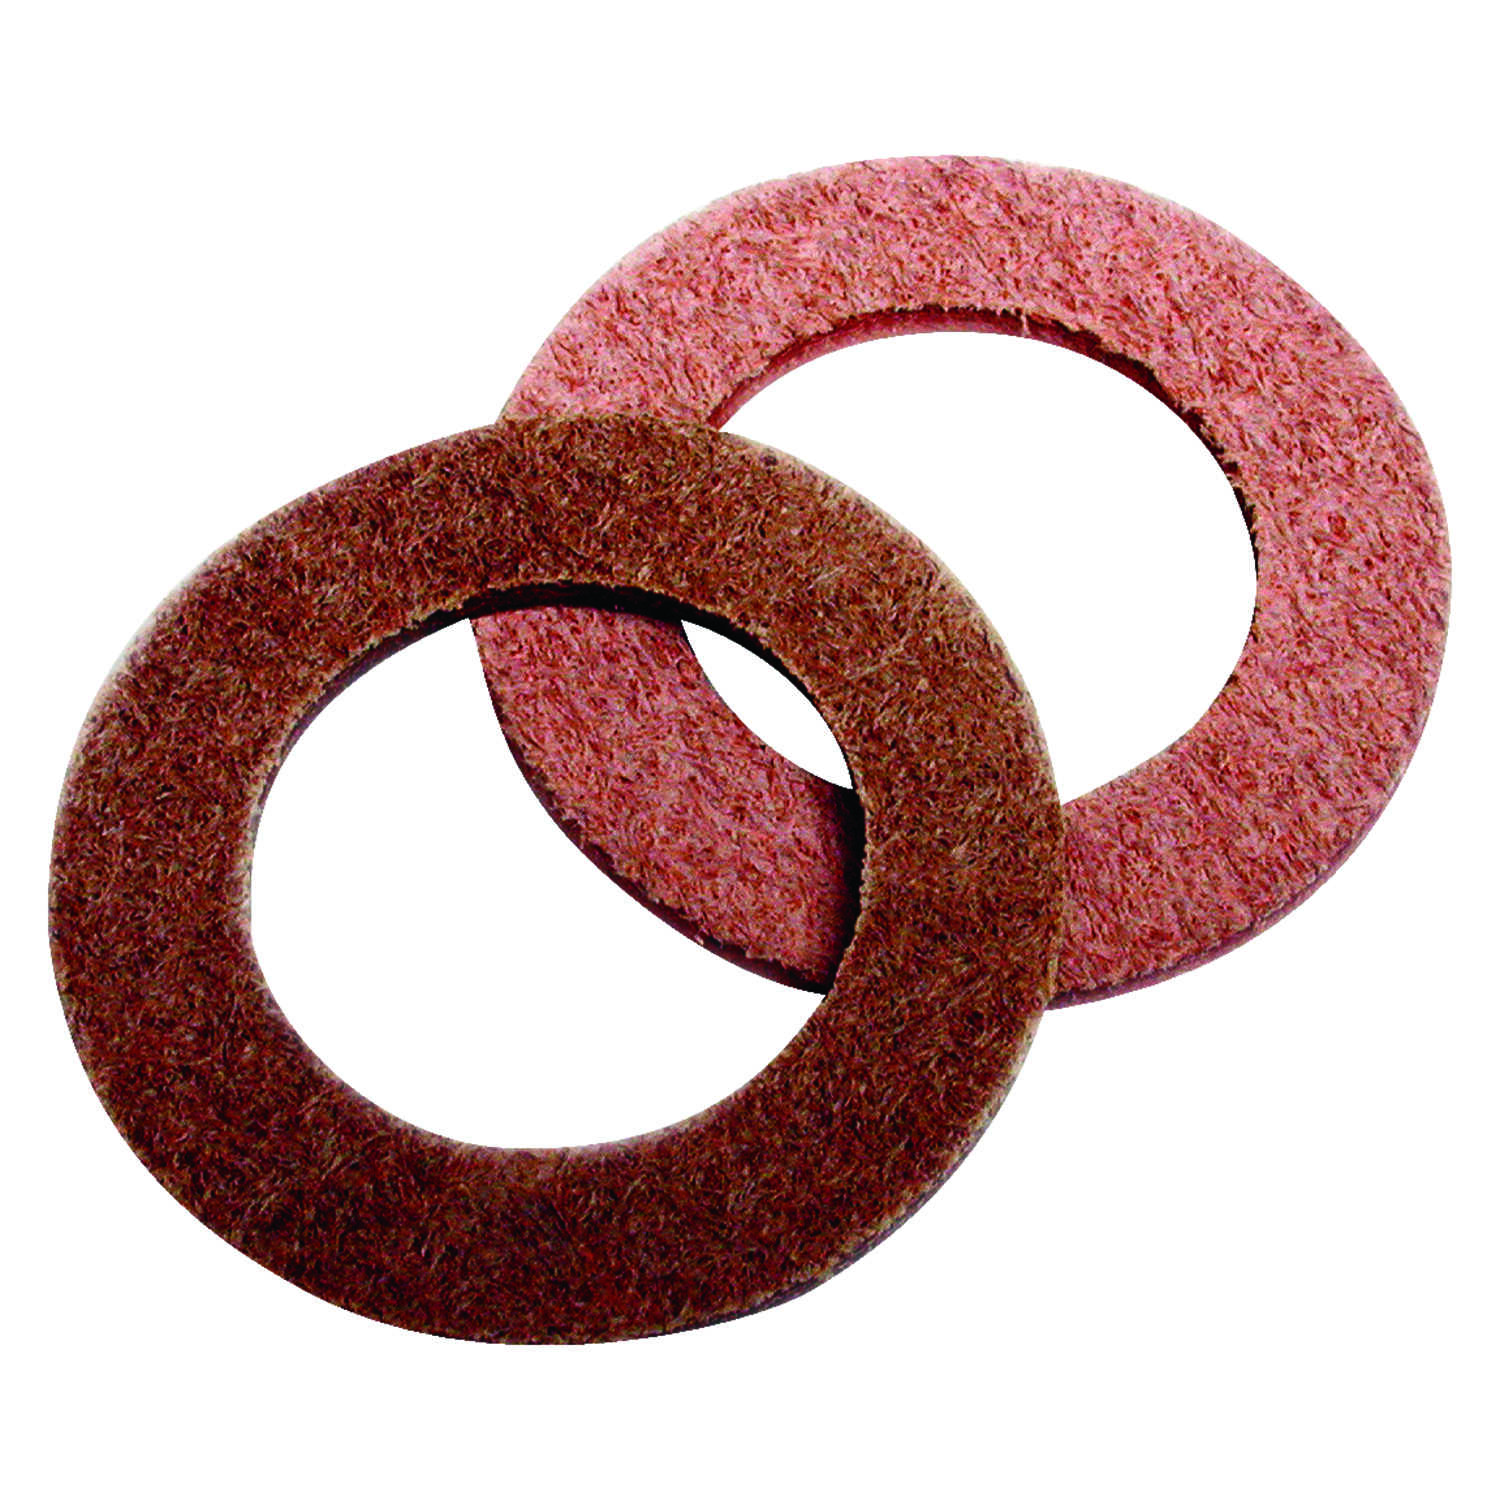 Dial  3/4 in. H x 3/4 in. W Leather  Brown  Washers